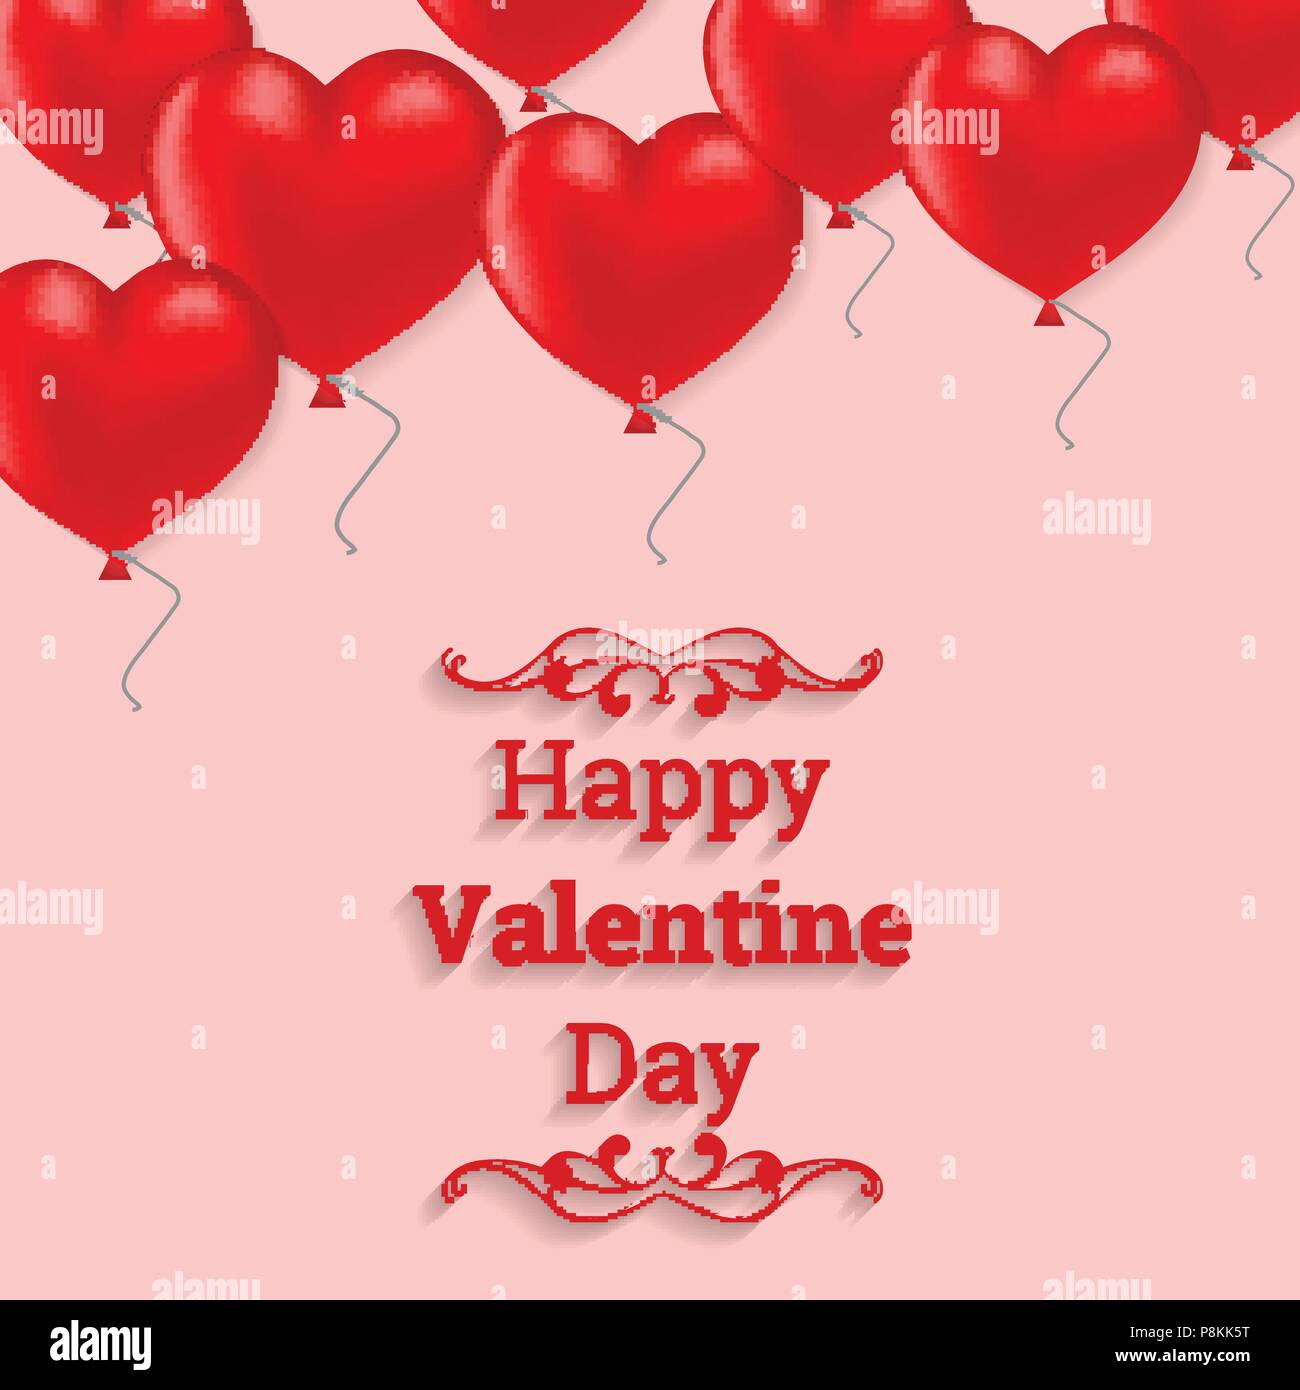 Happy Valentine S Day Card With Hearts Balloons For Web Design And